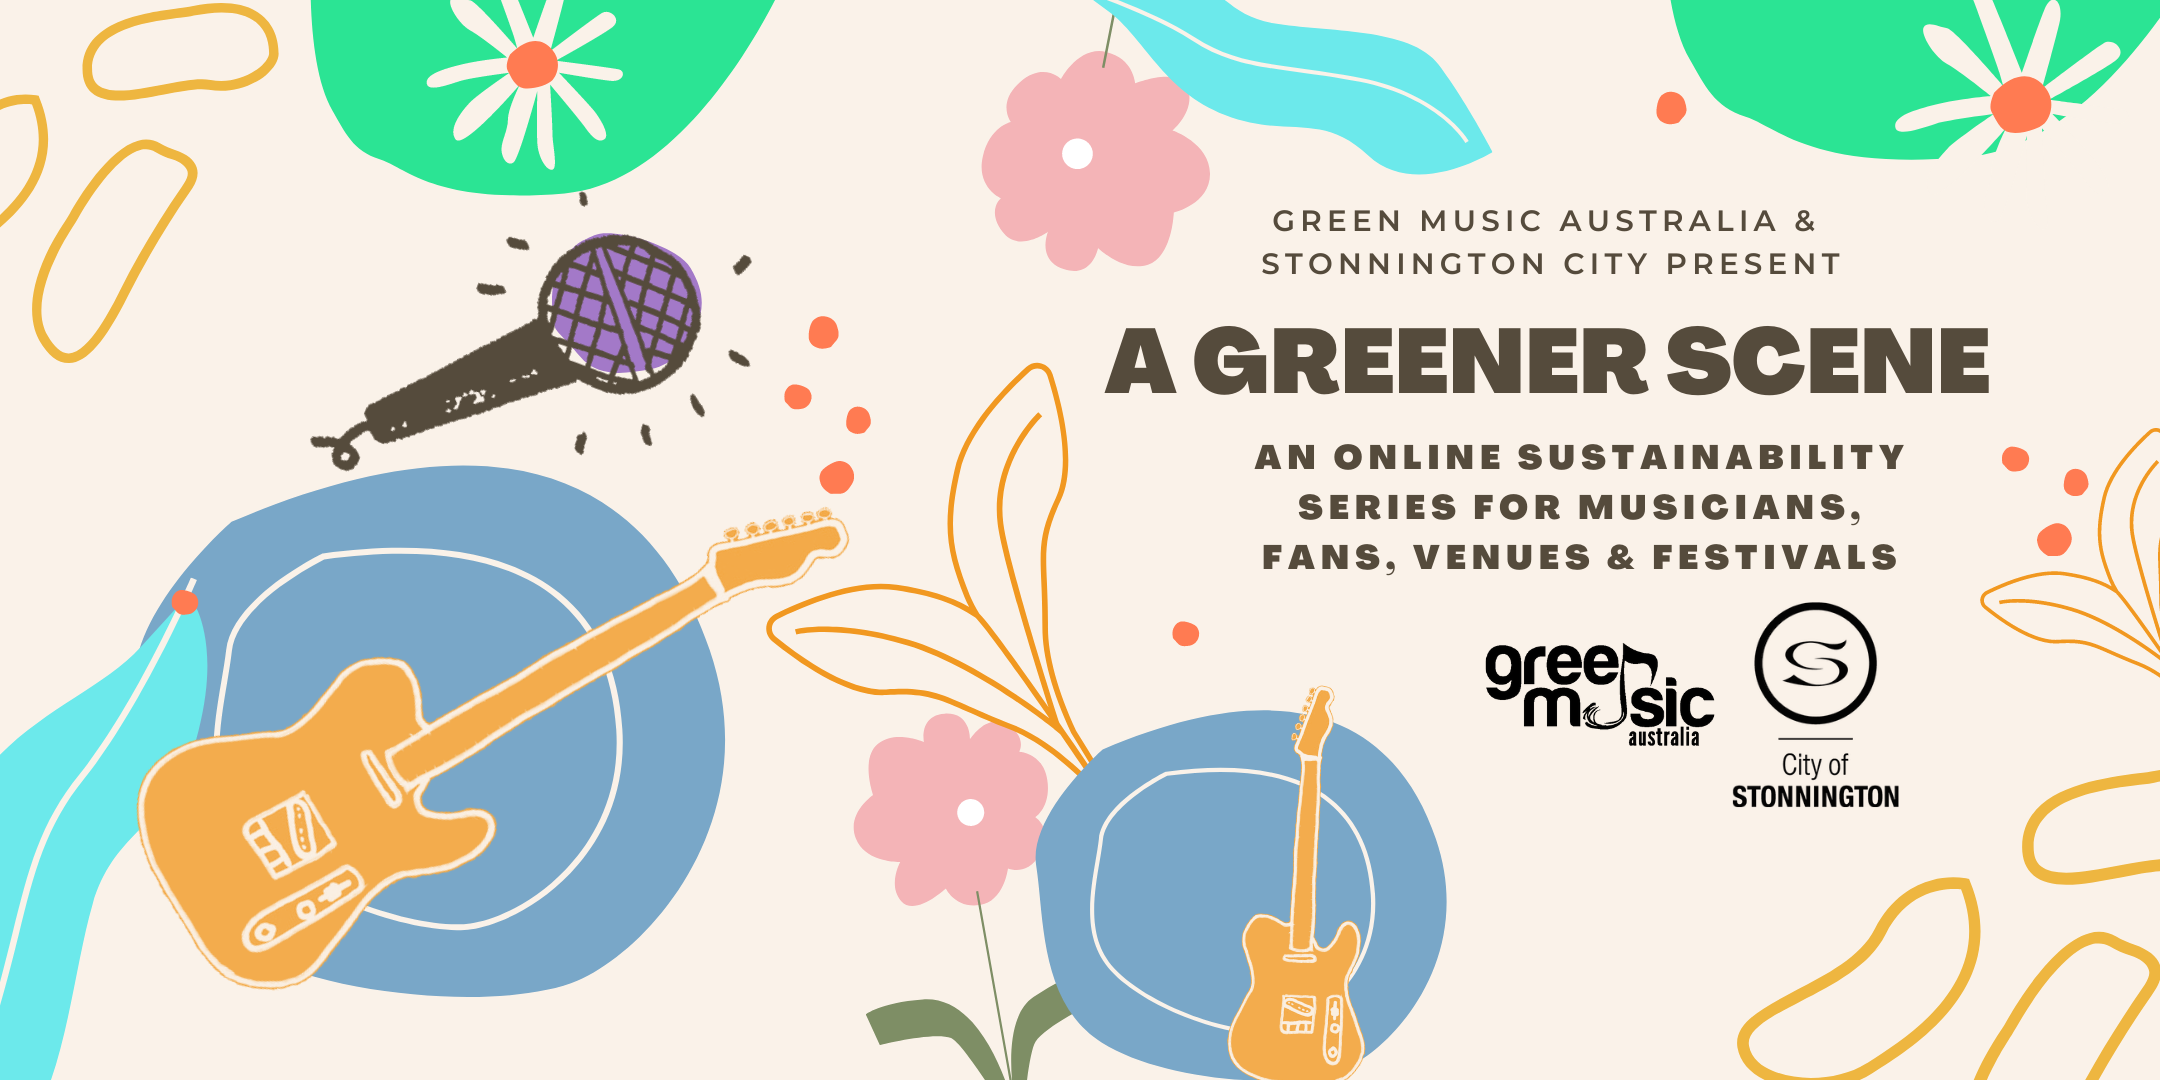 A GREENER SCENE   An online sustainability series for musicians, fans, venues & festivals